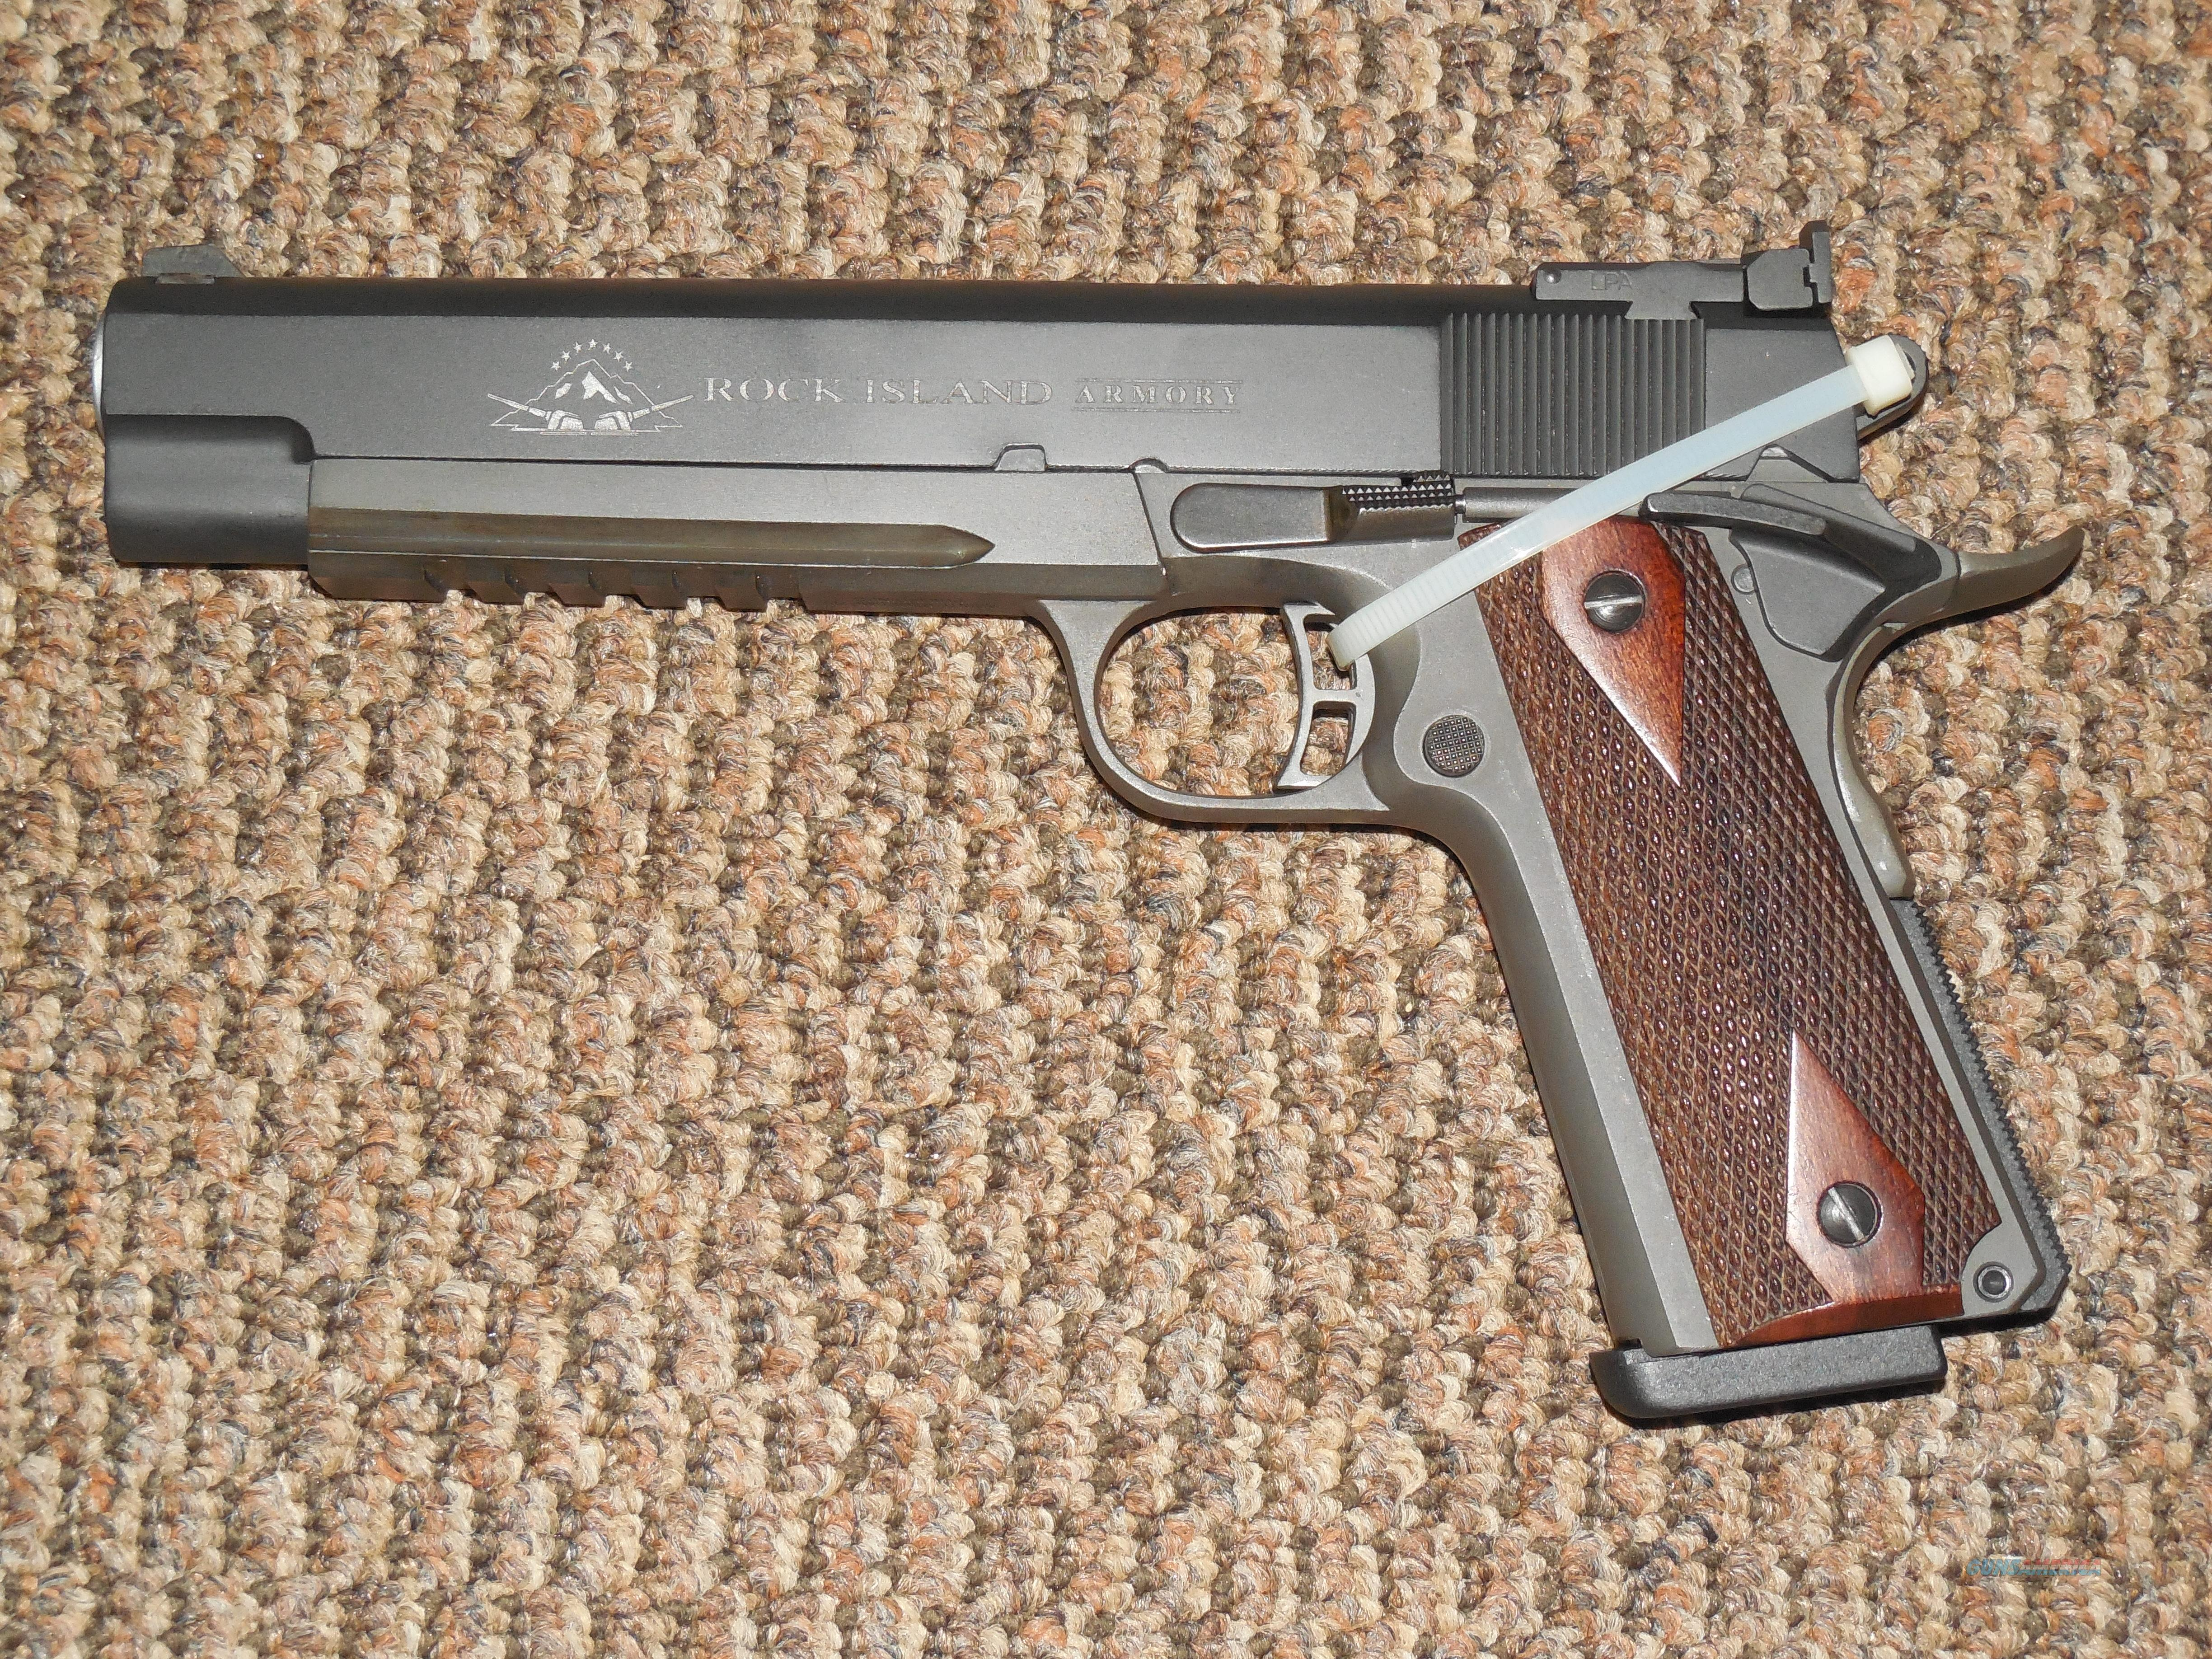 ROCK ISLAND 1911 TACTICAL 6-INCH .45 ACP PISTOL  Guns > Pistols > 1911 Pistol Copies (non-Colt)